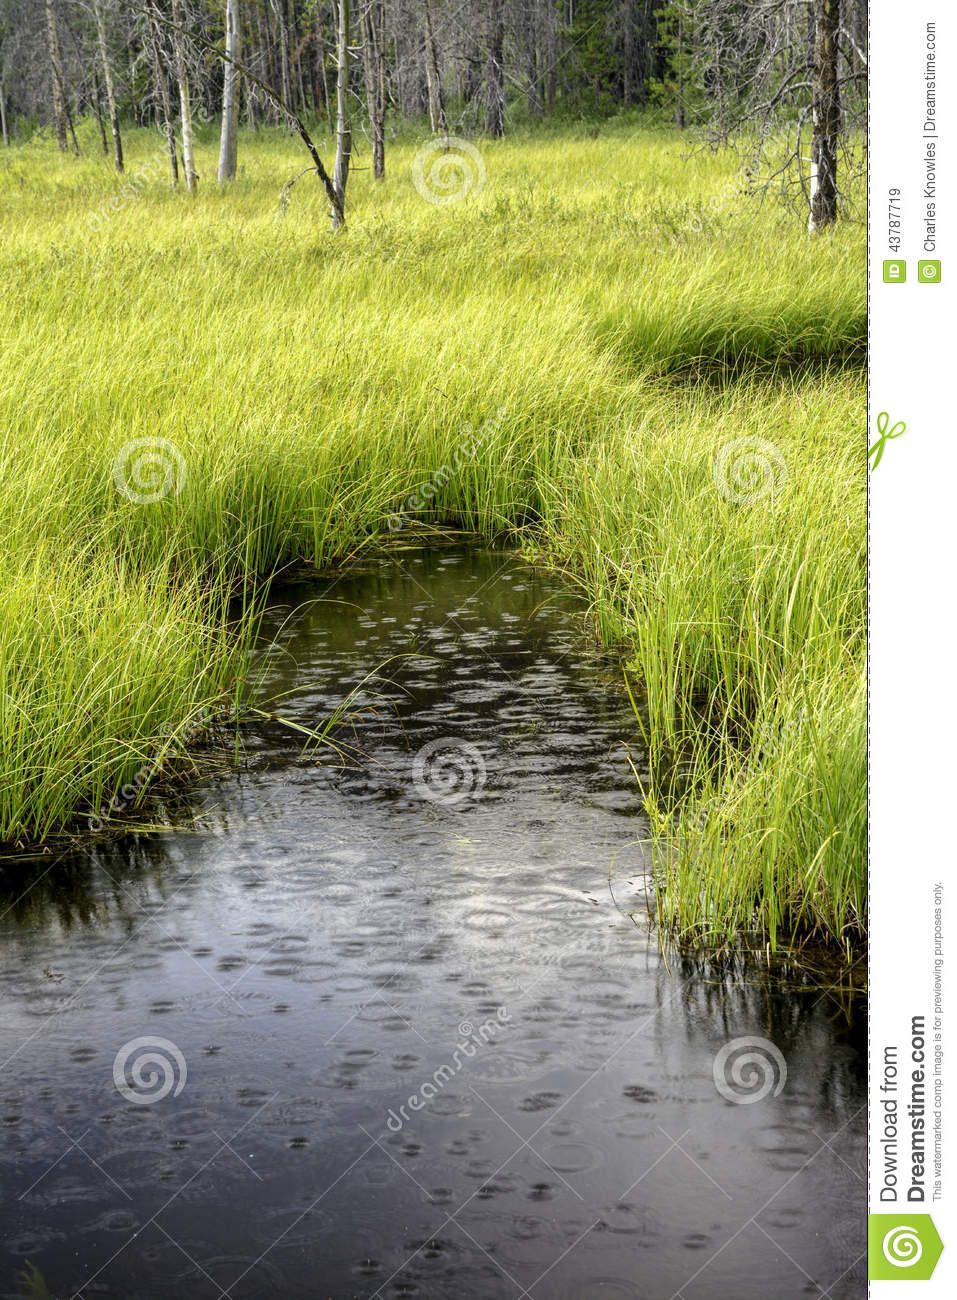 Pond Of Water In The Forest With Rain Drops Stock Photo